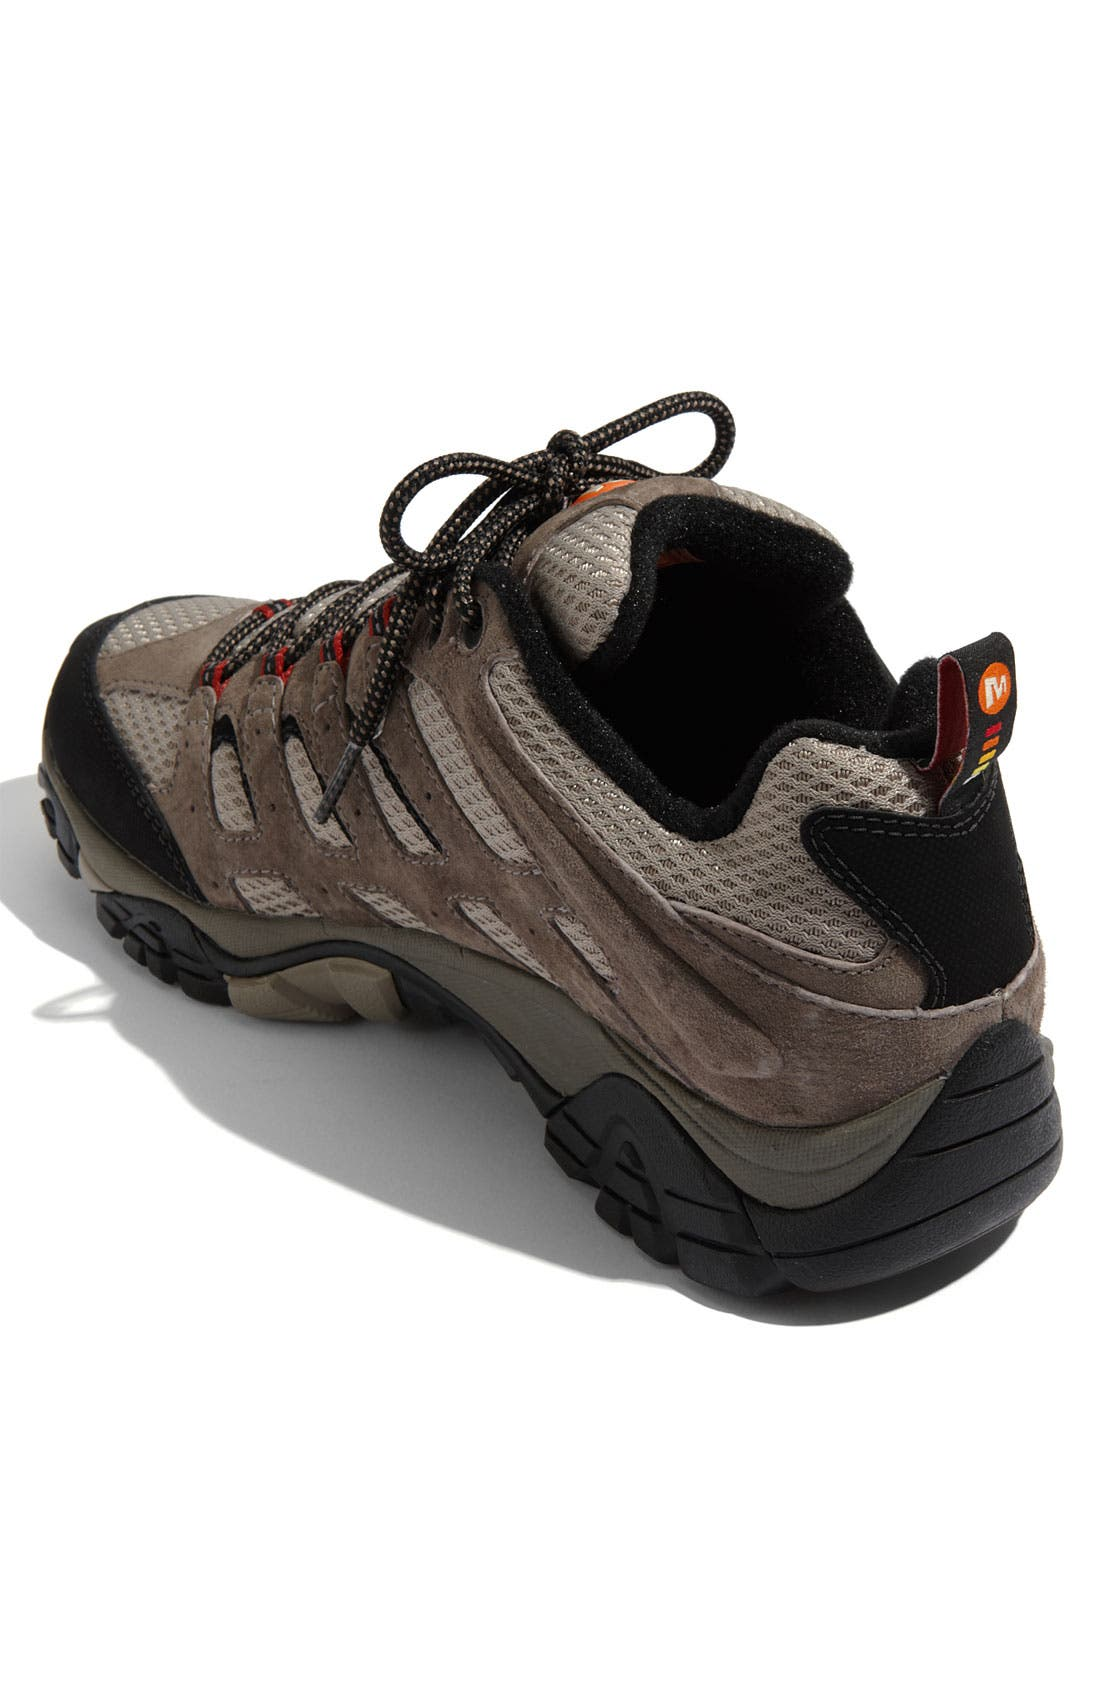 Alternate Image 2  - Merrell 'Moab' Waterproof Hiking Shoe (Men)